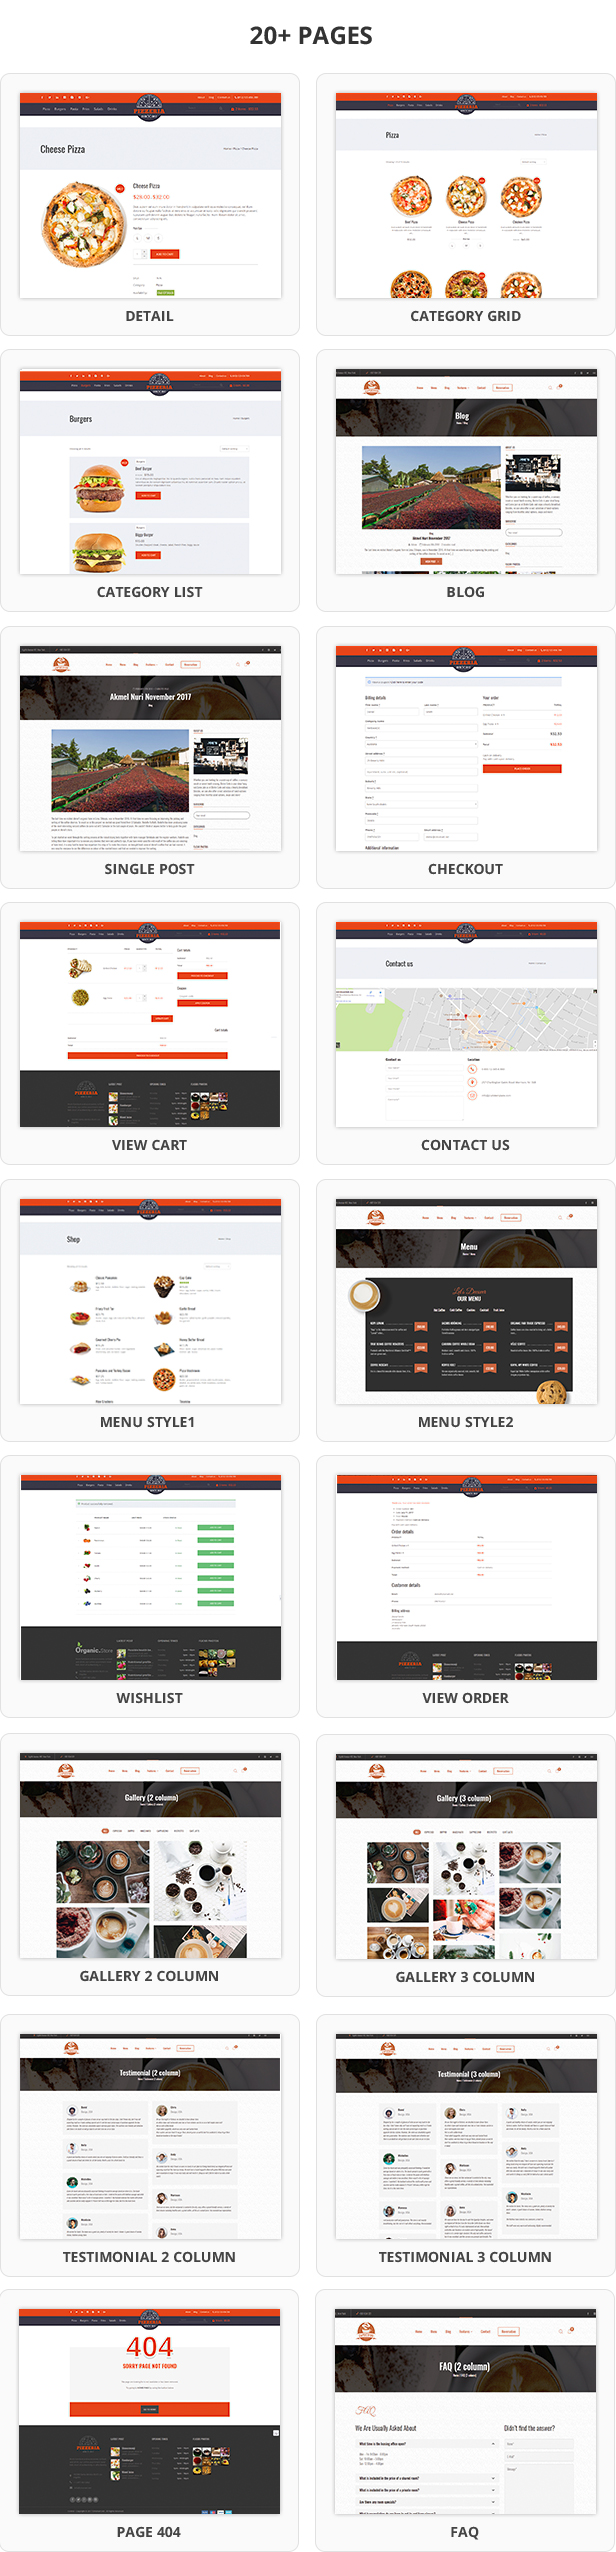 Foody - WordPress Restaurant Reservation & Food Store Website Theme - 9